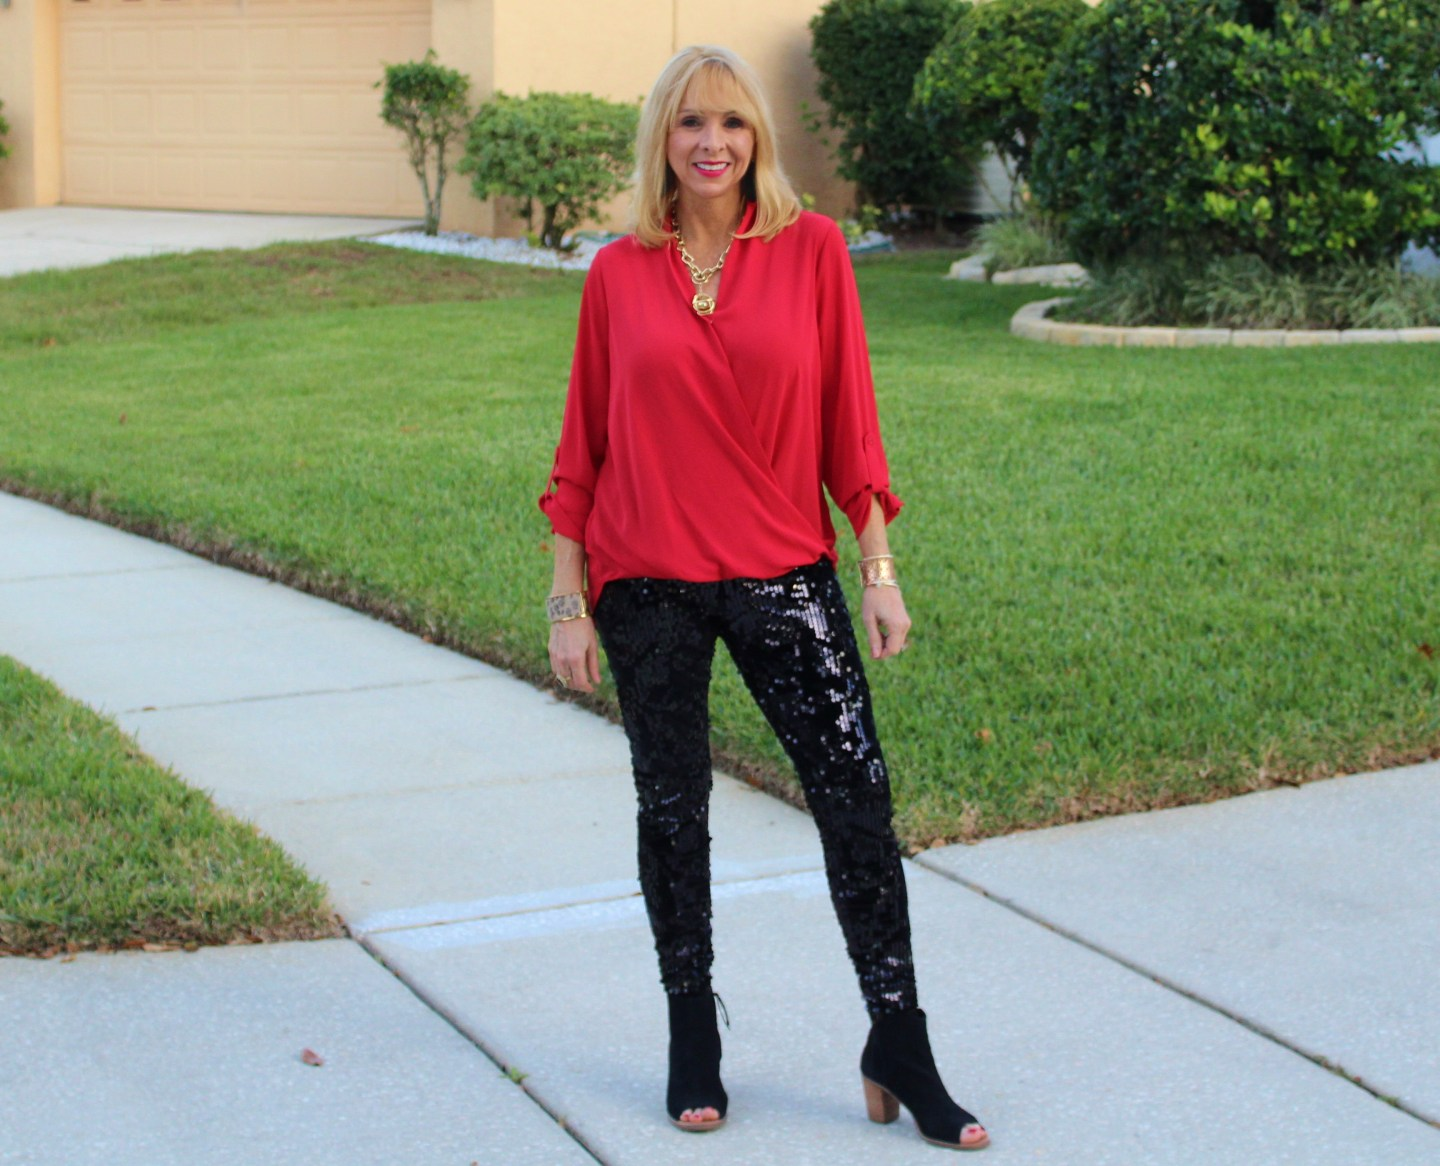 Sequin Leggings + Wrap Blouse + Open Toe Booties